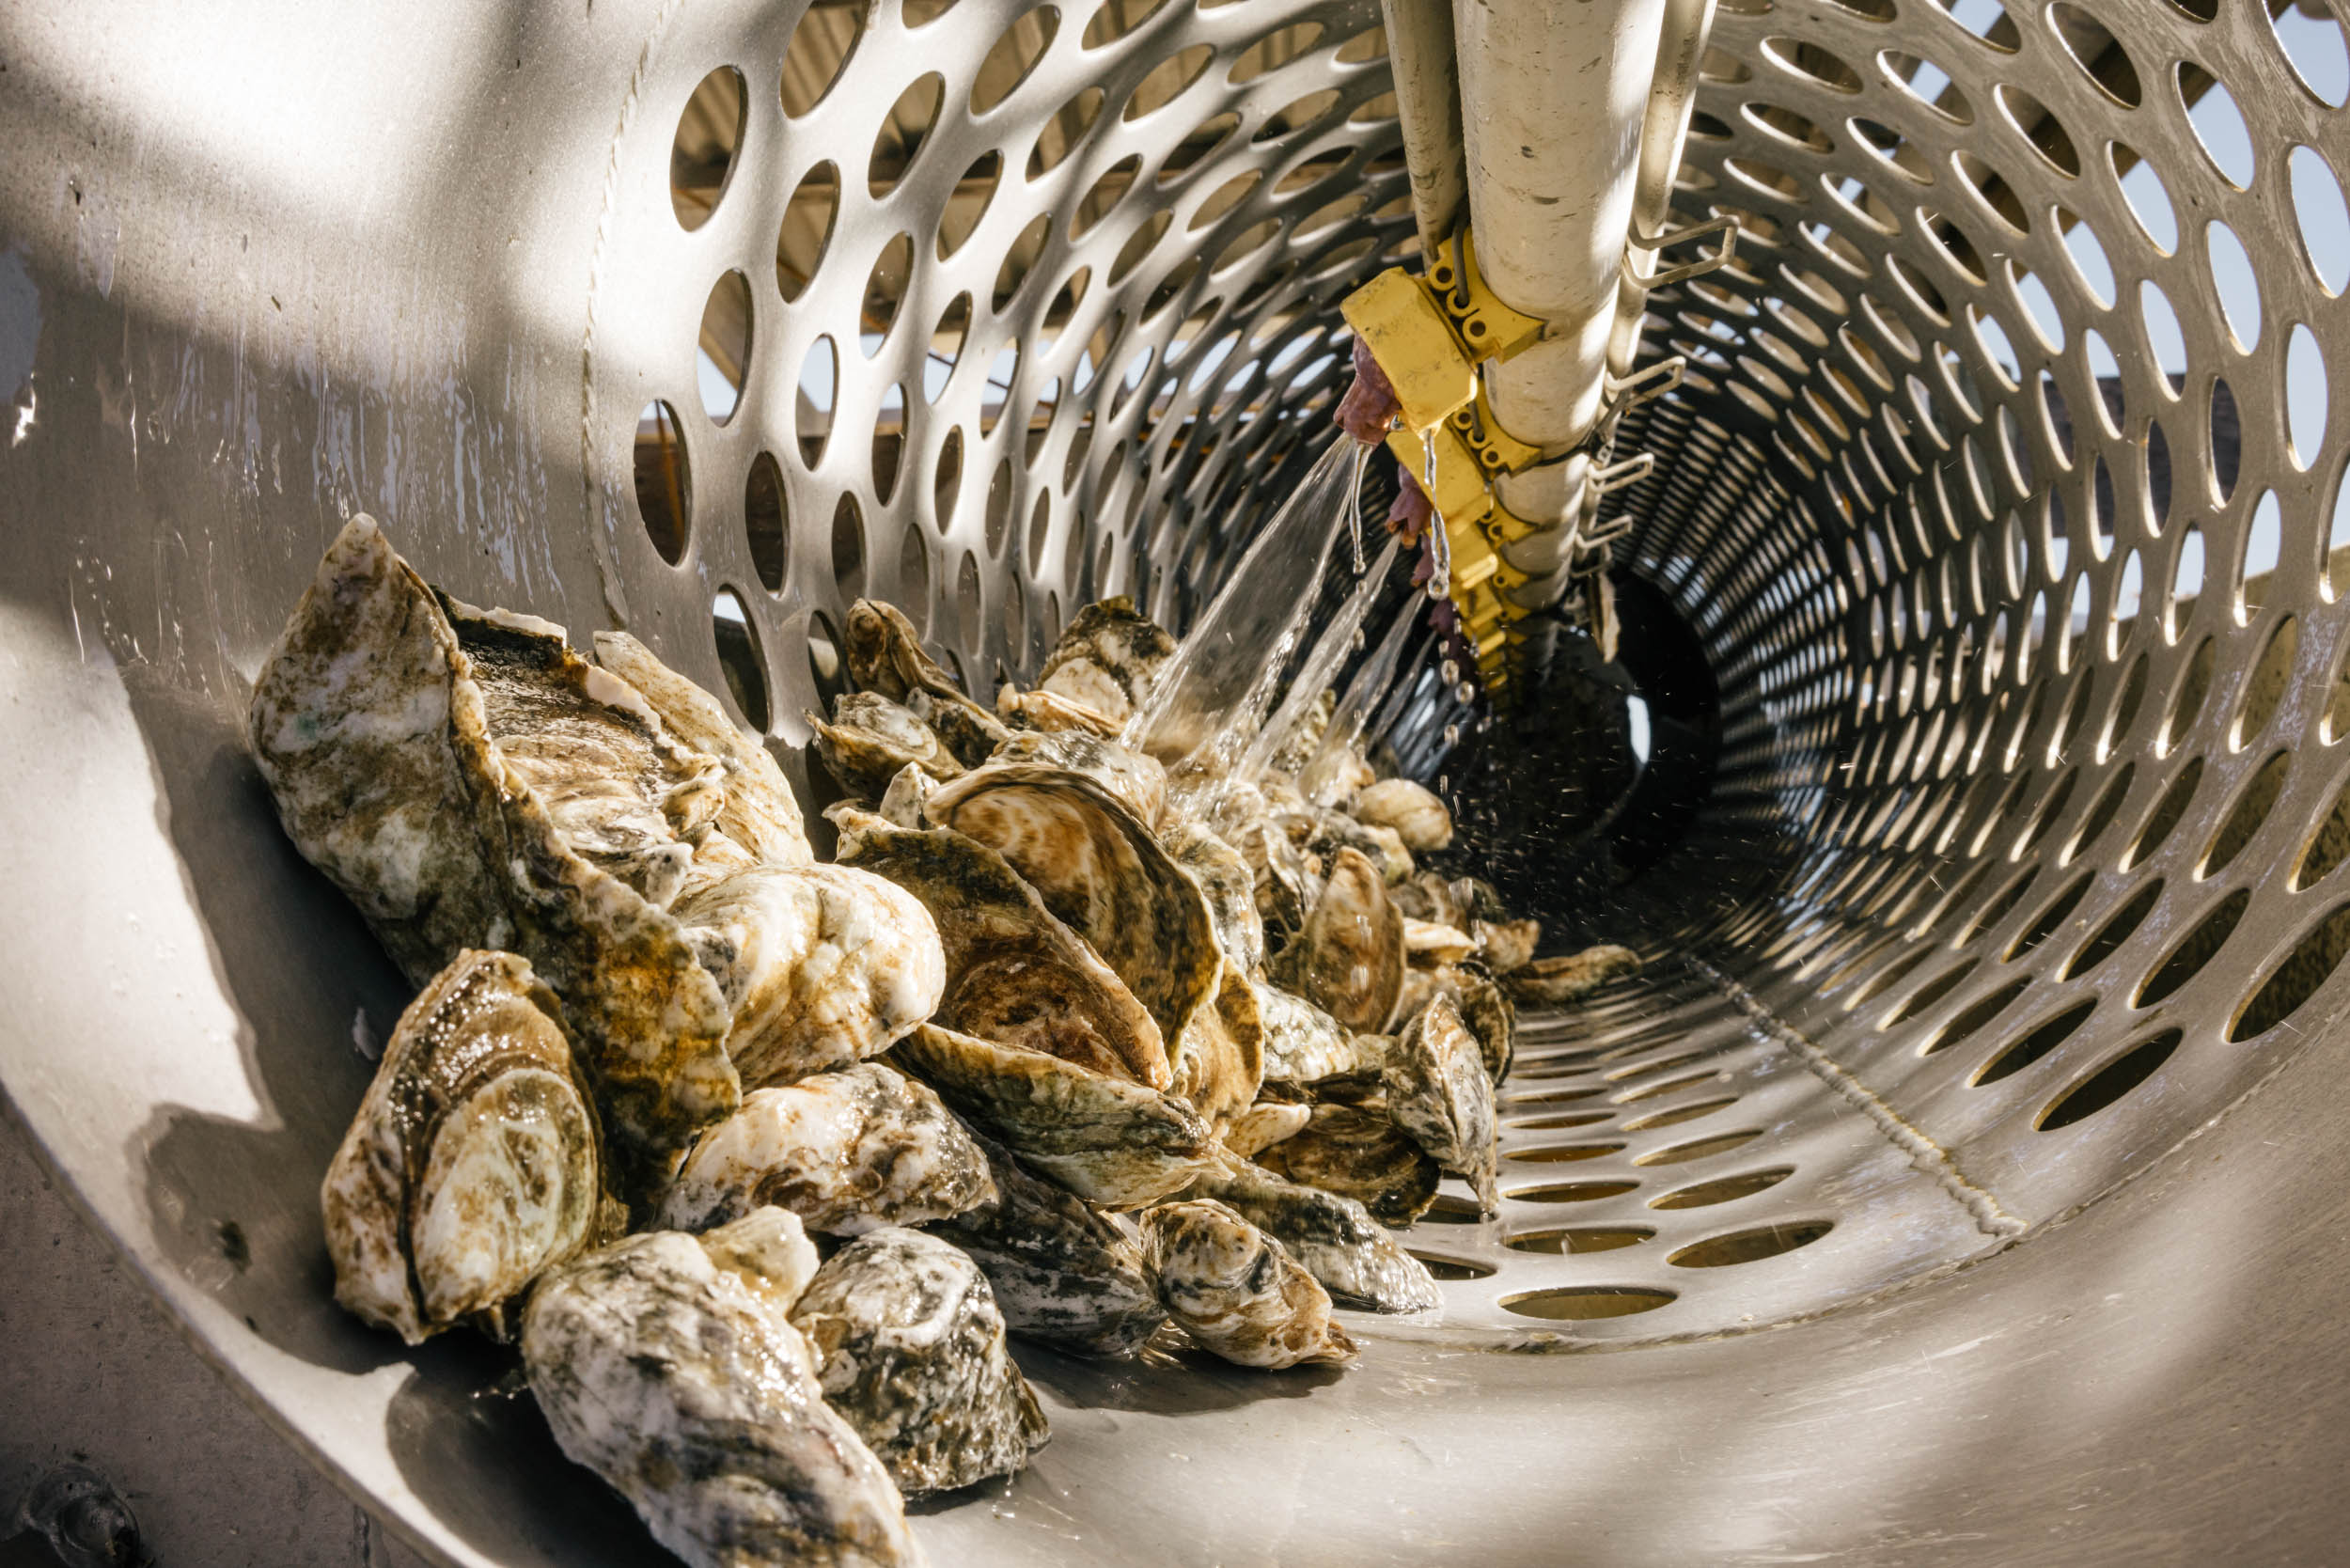 oysters being cleaned in tumbler with water